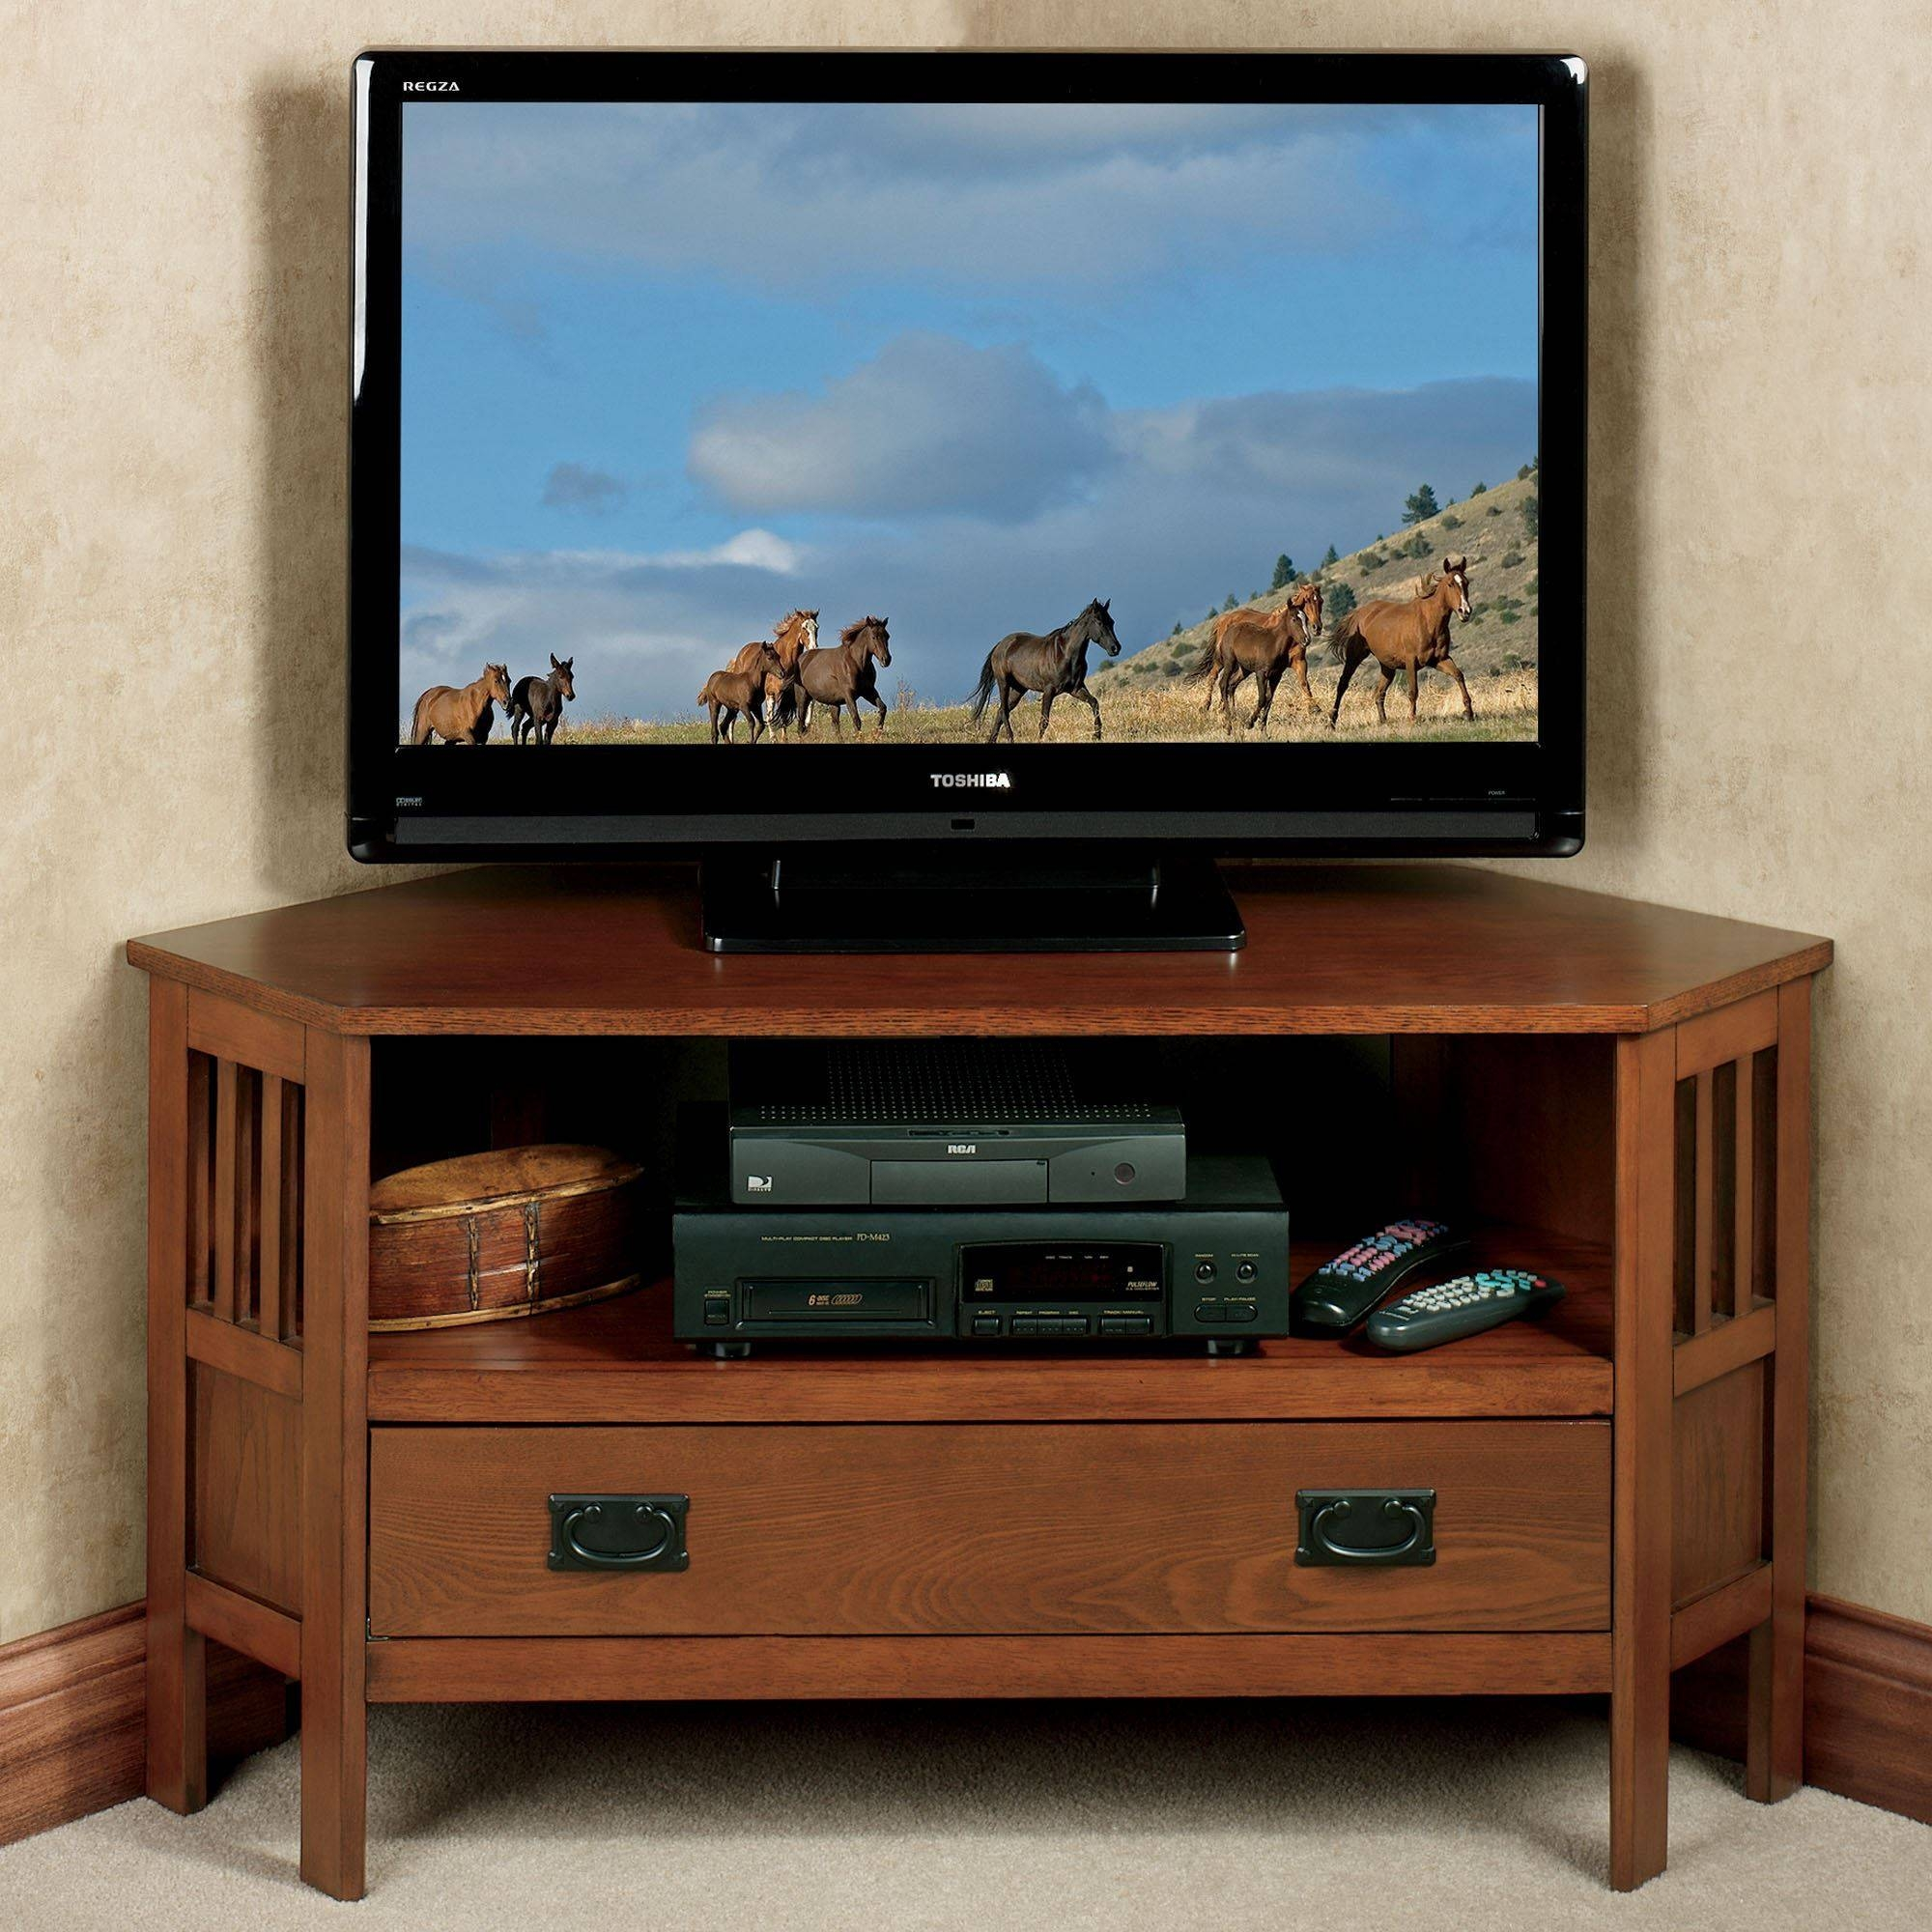 Laramie Mission Corner Tv Media Stand with regard to Corner Tv Stands With Drawers (Image 8 of 15)